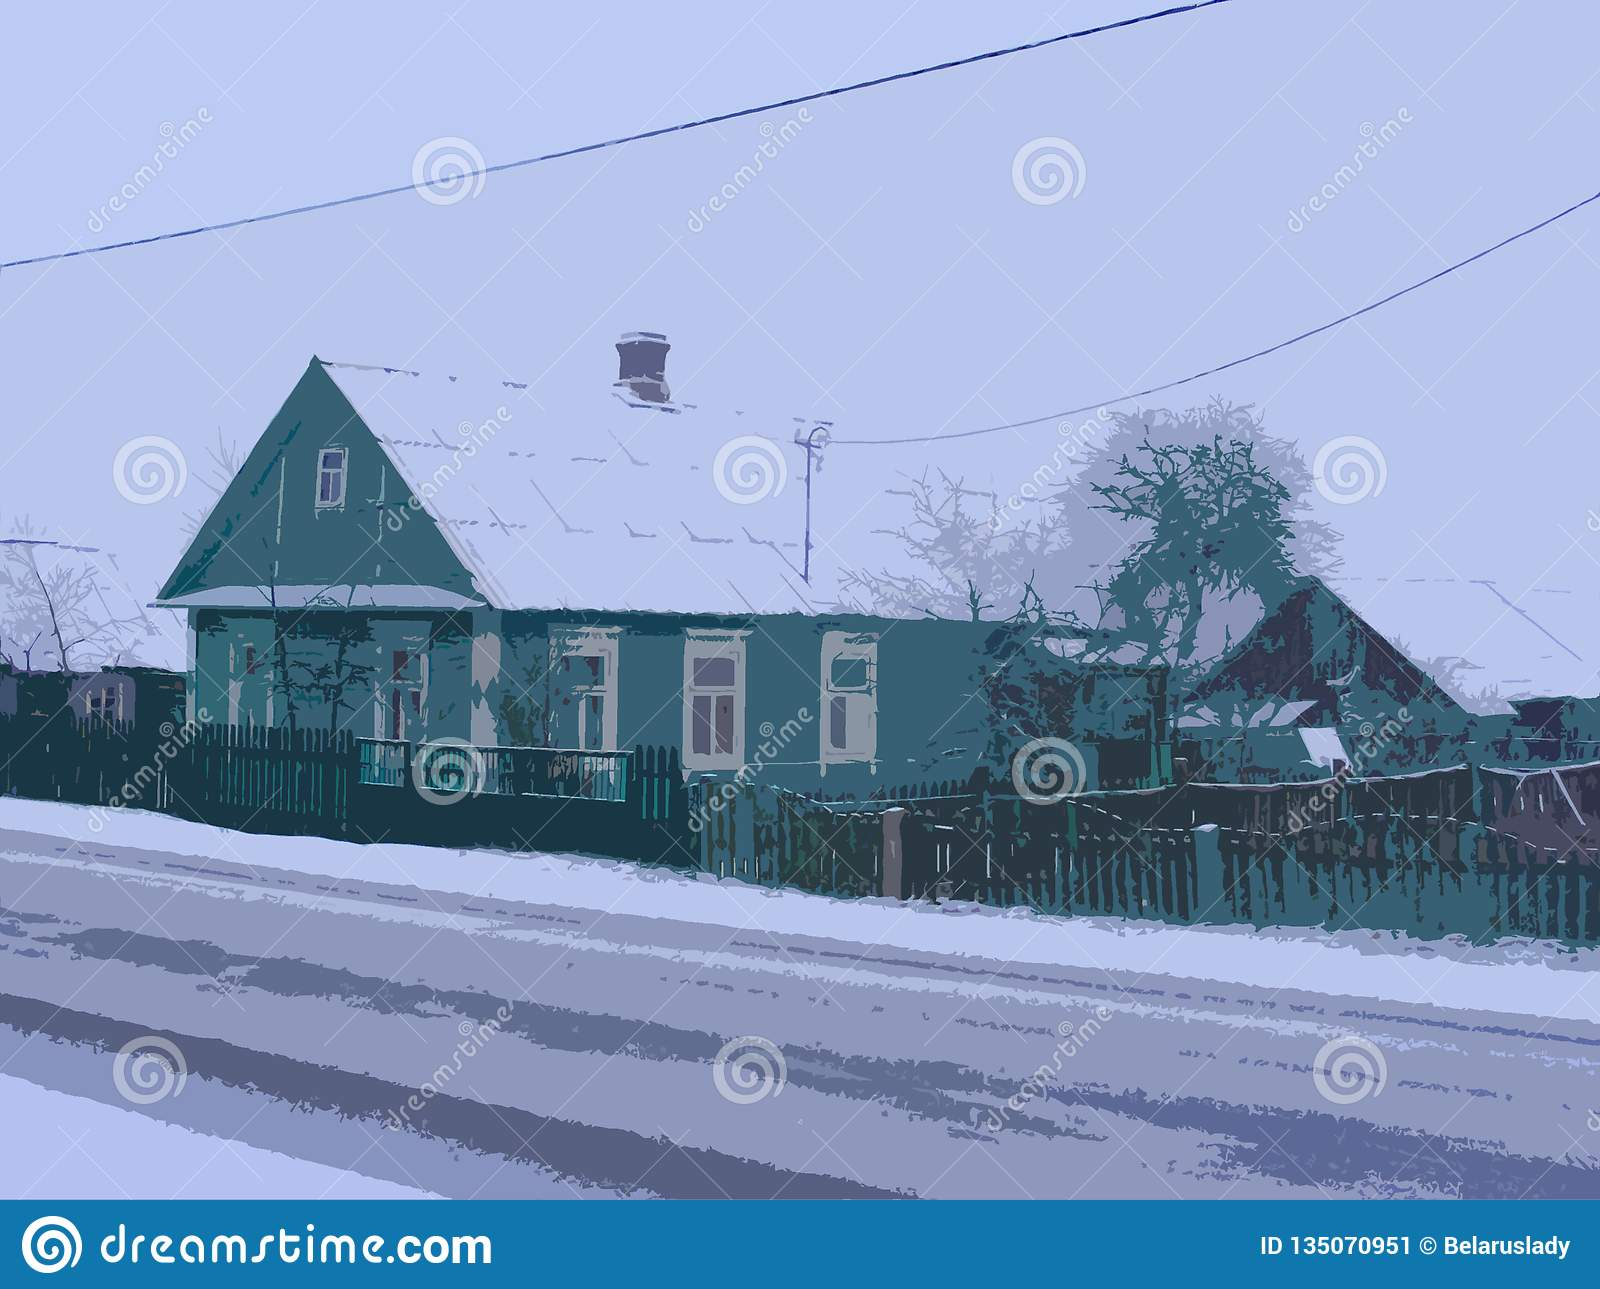 Russian Architecture. Beautiful Wooden House In Traditional ... on traditional french houses, traditional scottish houses, russia city houses, traditional hmong houses, traditional serbian houses, old french houses, traditional italian houses, traditional belgian houses, traditional bulgarian houses, traditional greek houses, traditional danish houses, traditional chinese house, traditional swedish houses, siberia russia houses, traditional ukraine houses, izba peasant houses, traditional tswana houses, traditional norwegian houses, traditional omani houses, traditional irish houses,